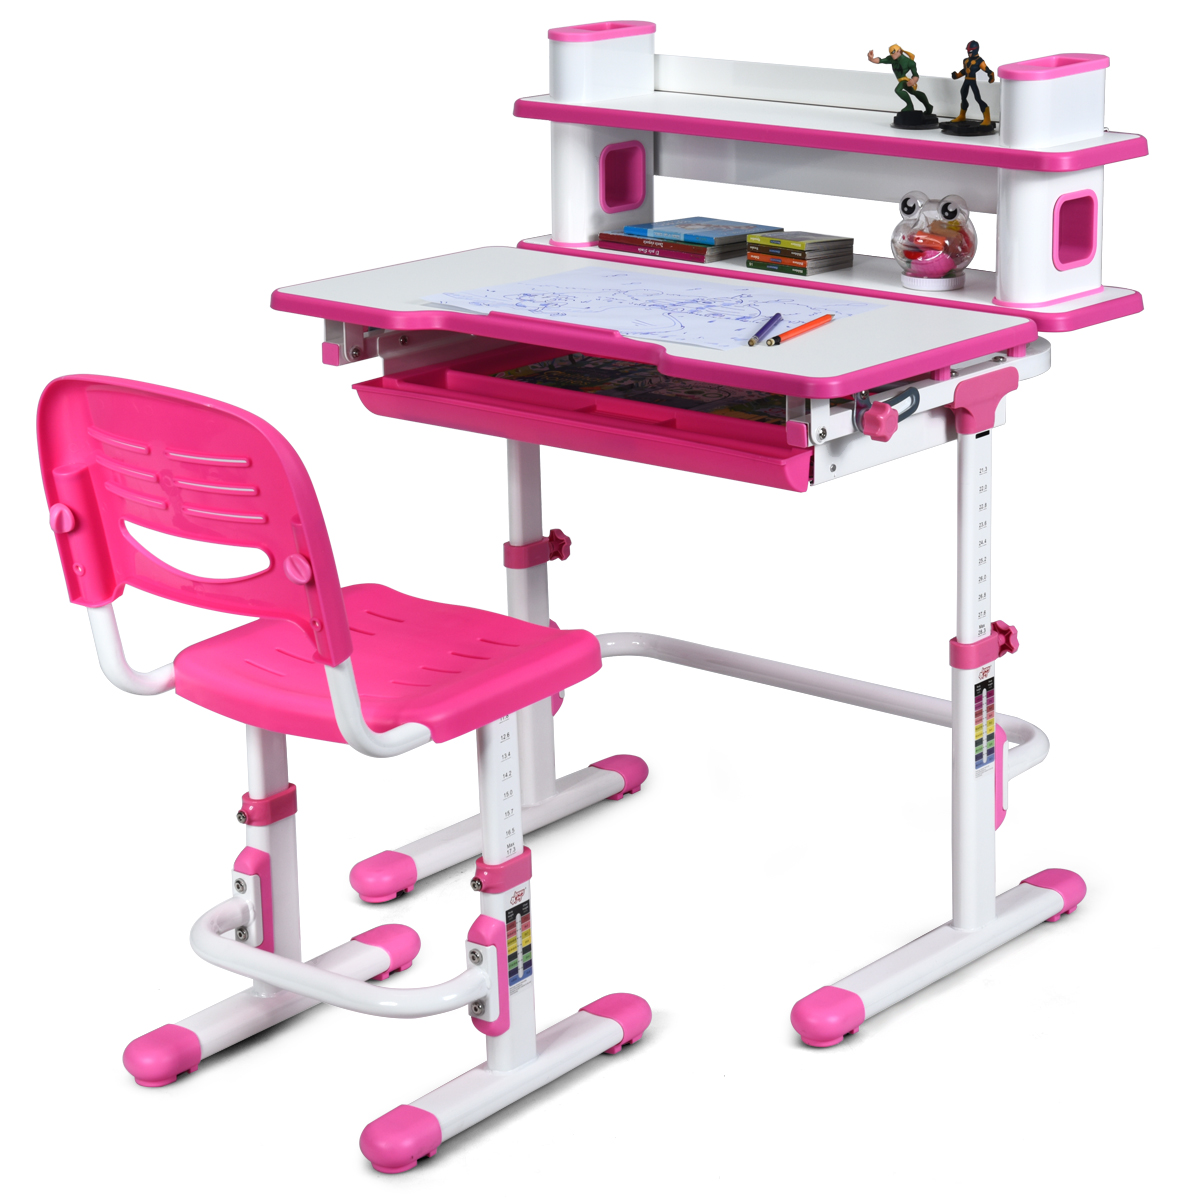 Children S Desk Chair Set Height Adjustable Working Table W Shelf Drawer Pink Buy At The Price Of 262 93 In Aliexpress Com Imall Com